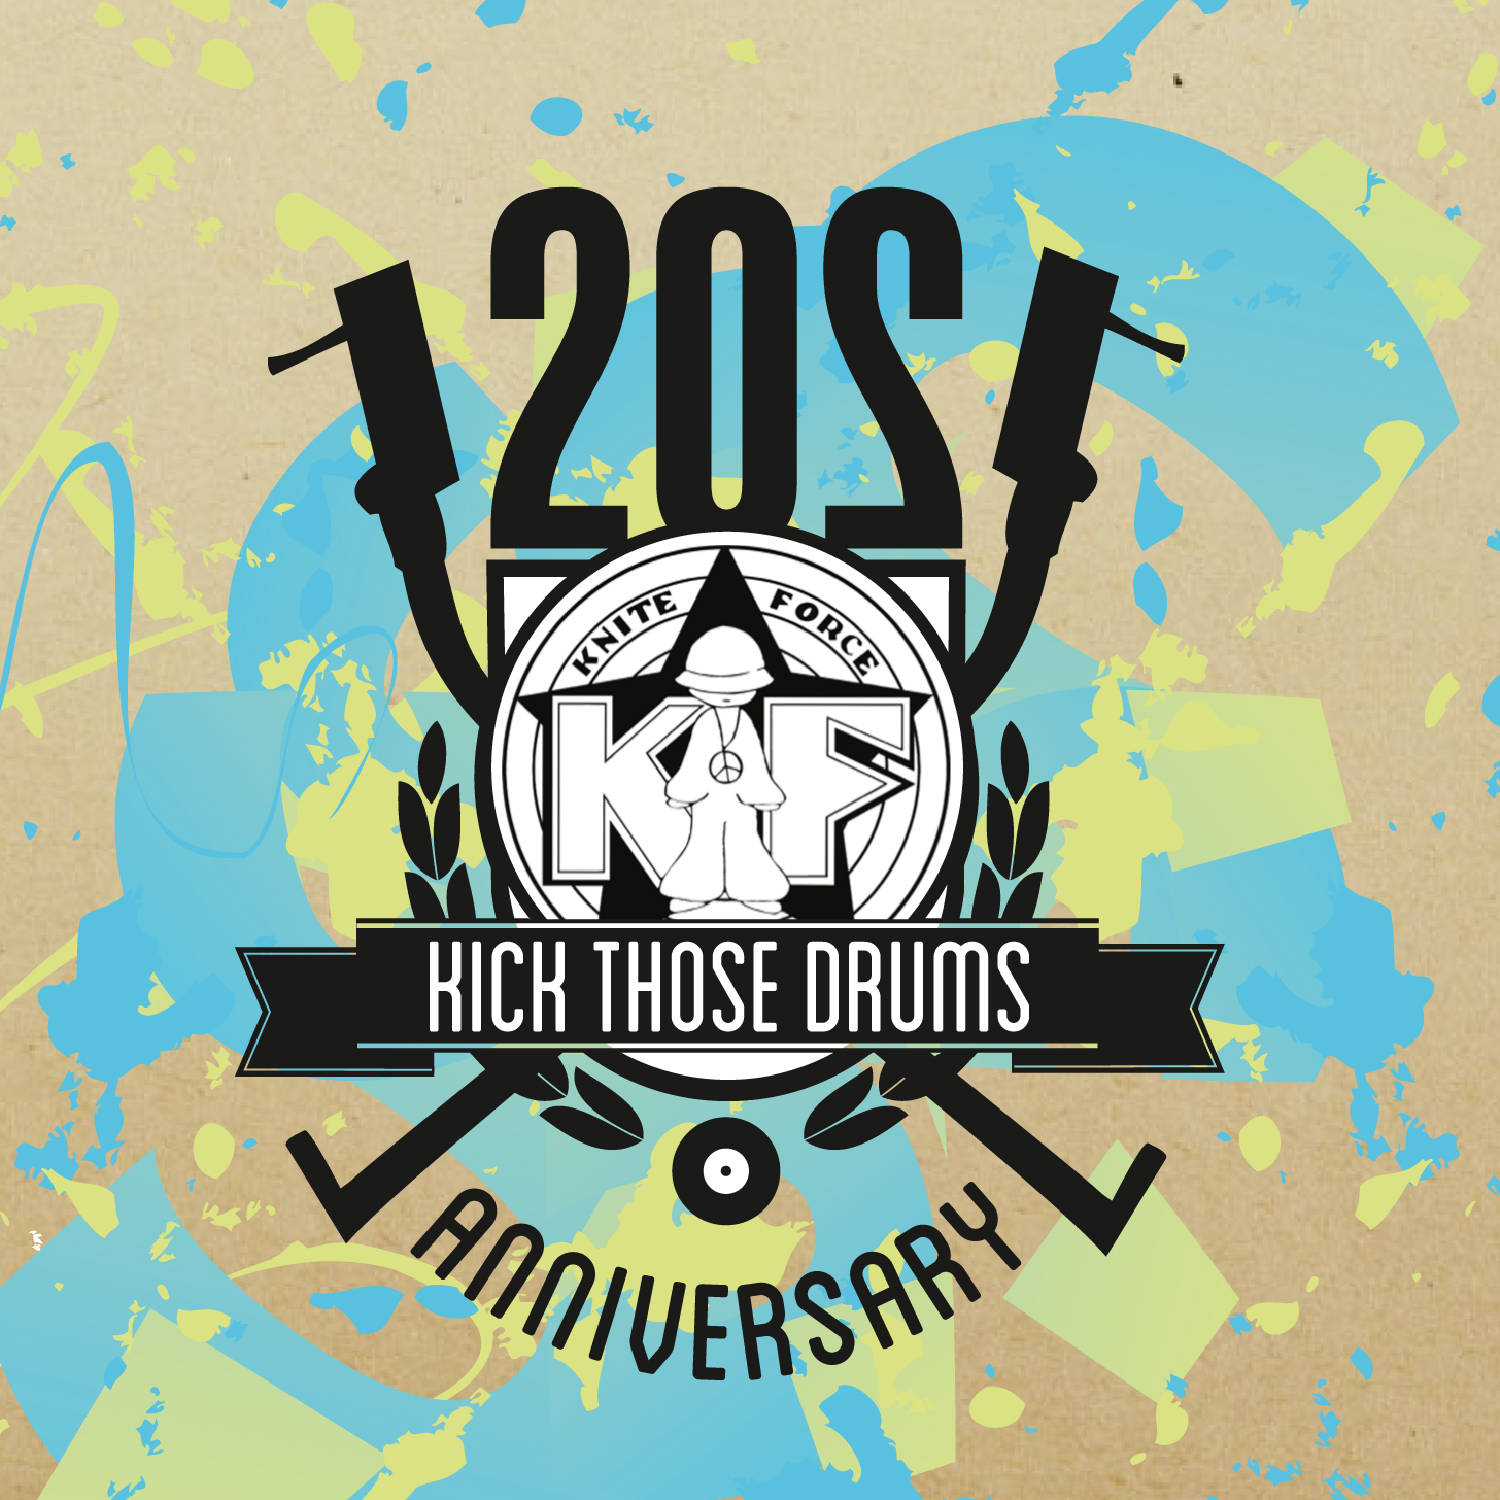 [KFACD027] Various - 20/20 Anniversary Set - Kick Those Drums (Digital Only)